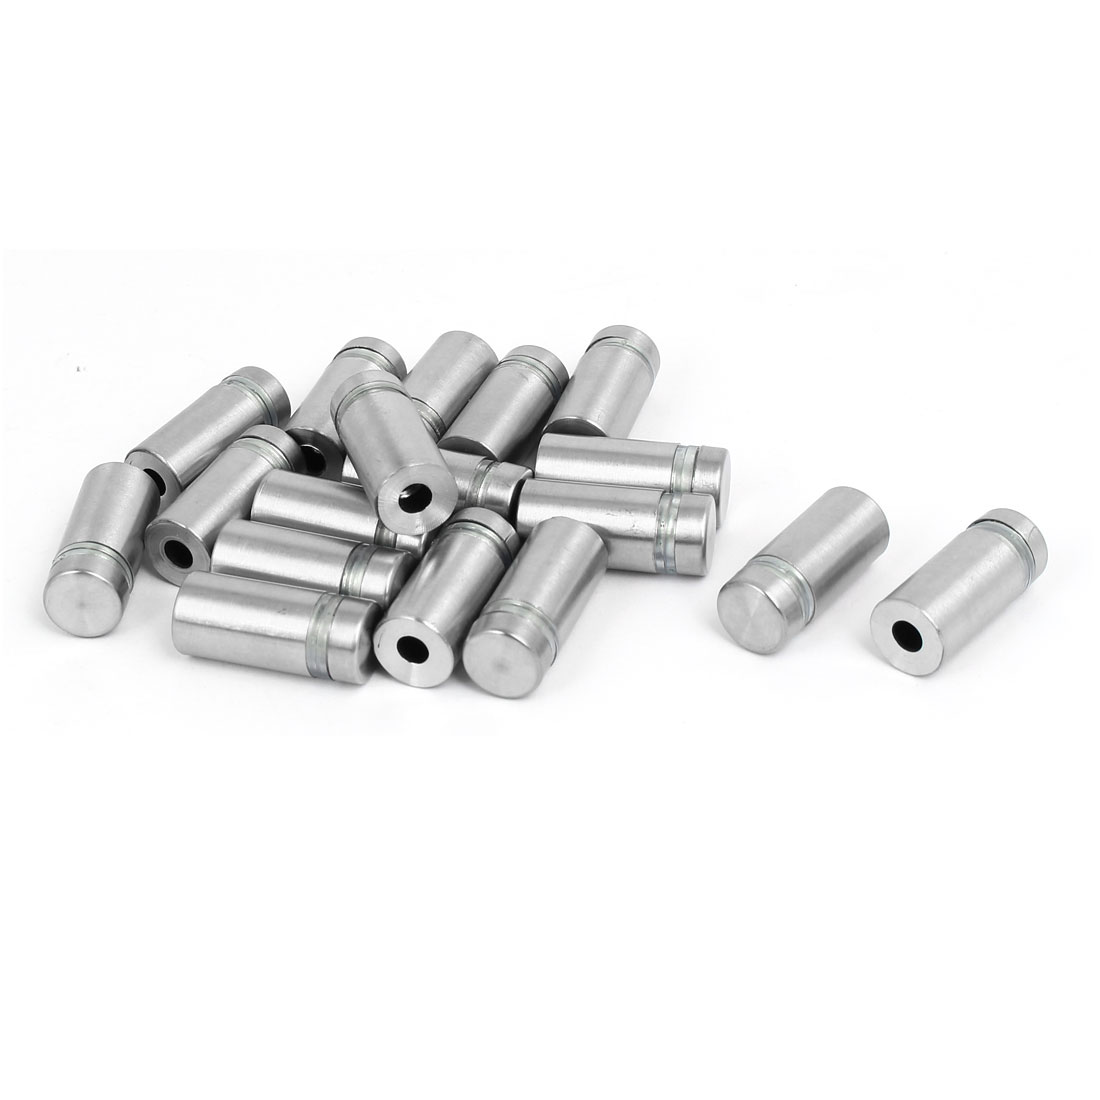 12mm x 27mm Stainless Steel Advertise Glass Standoff Pin Fixing Mount Bolt 18pcs